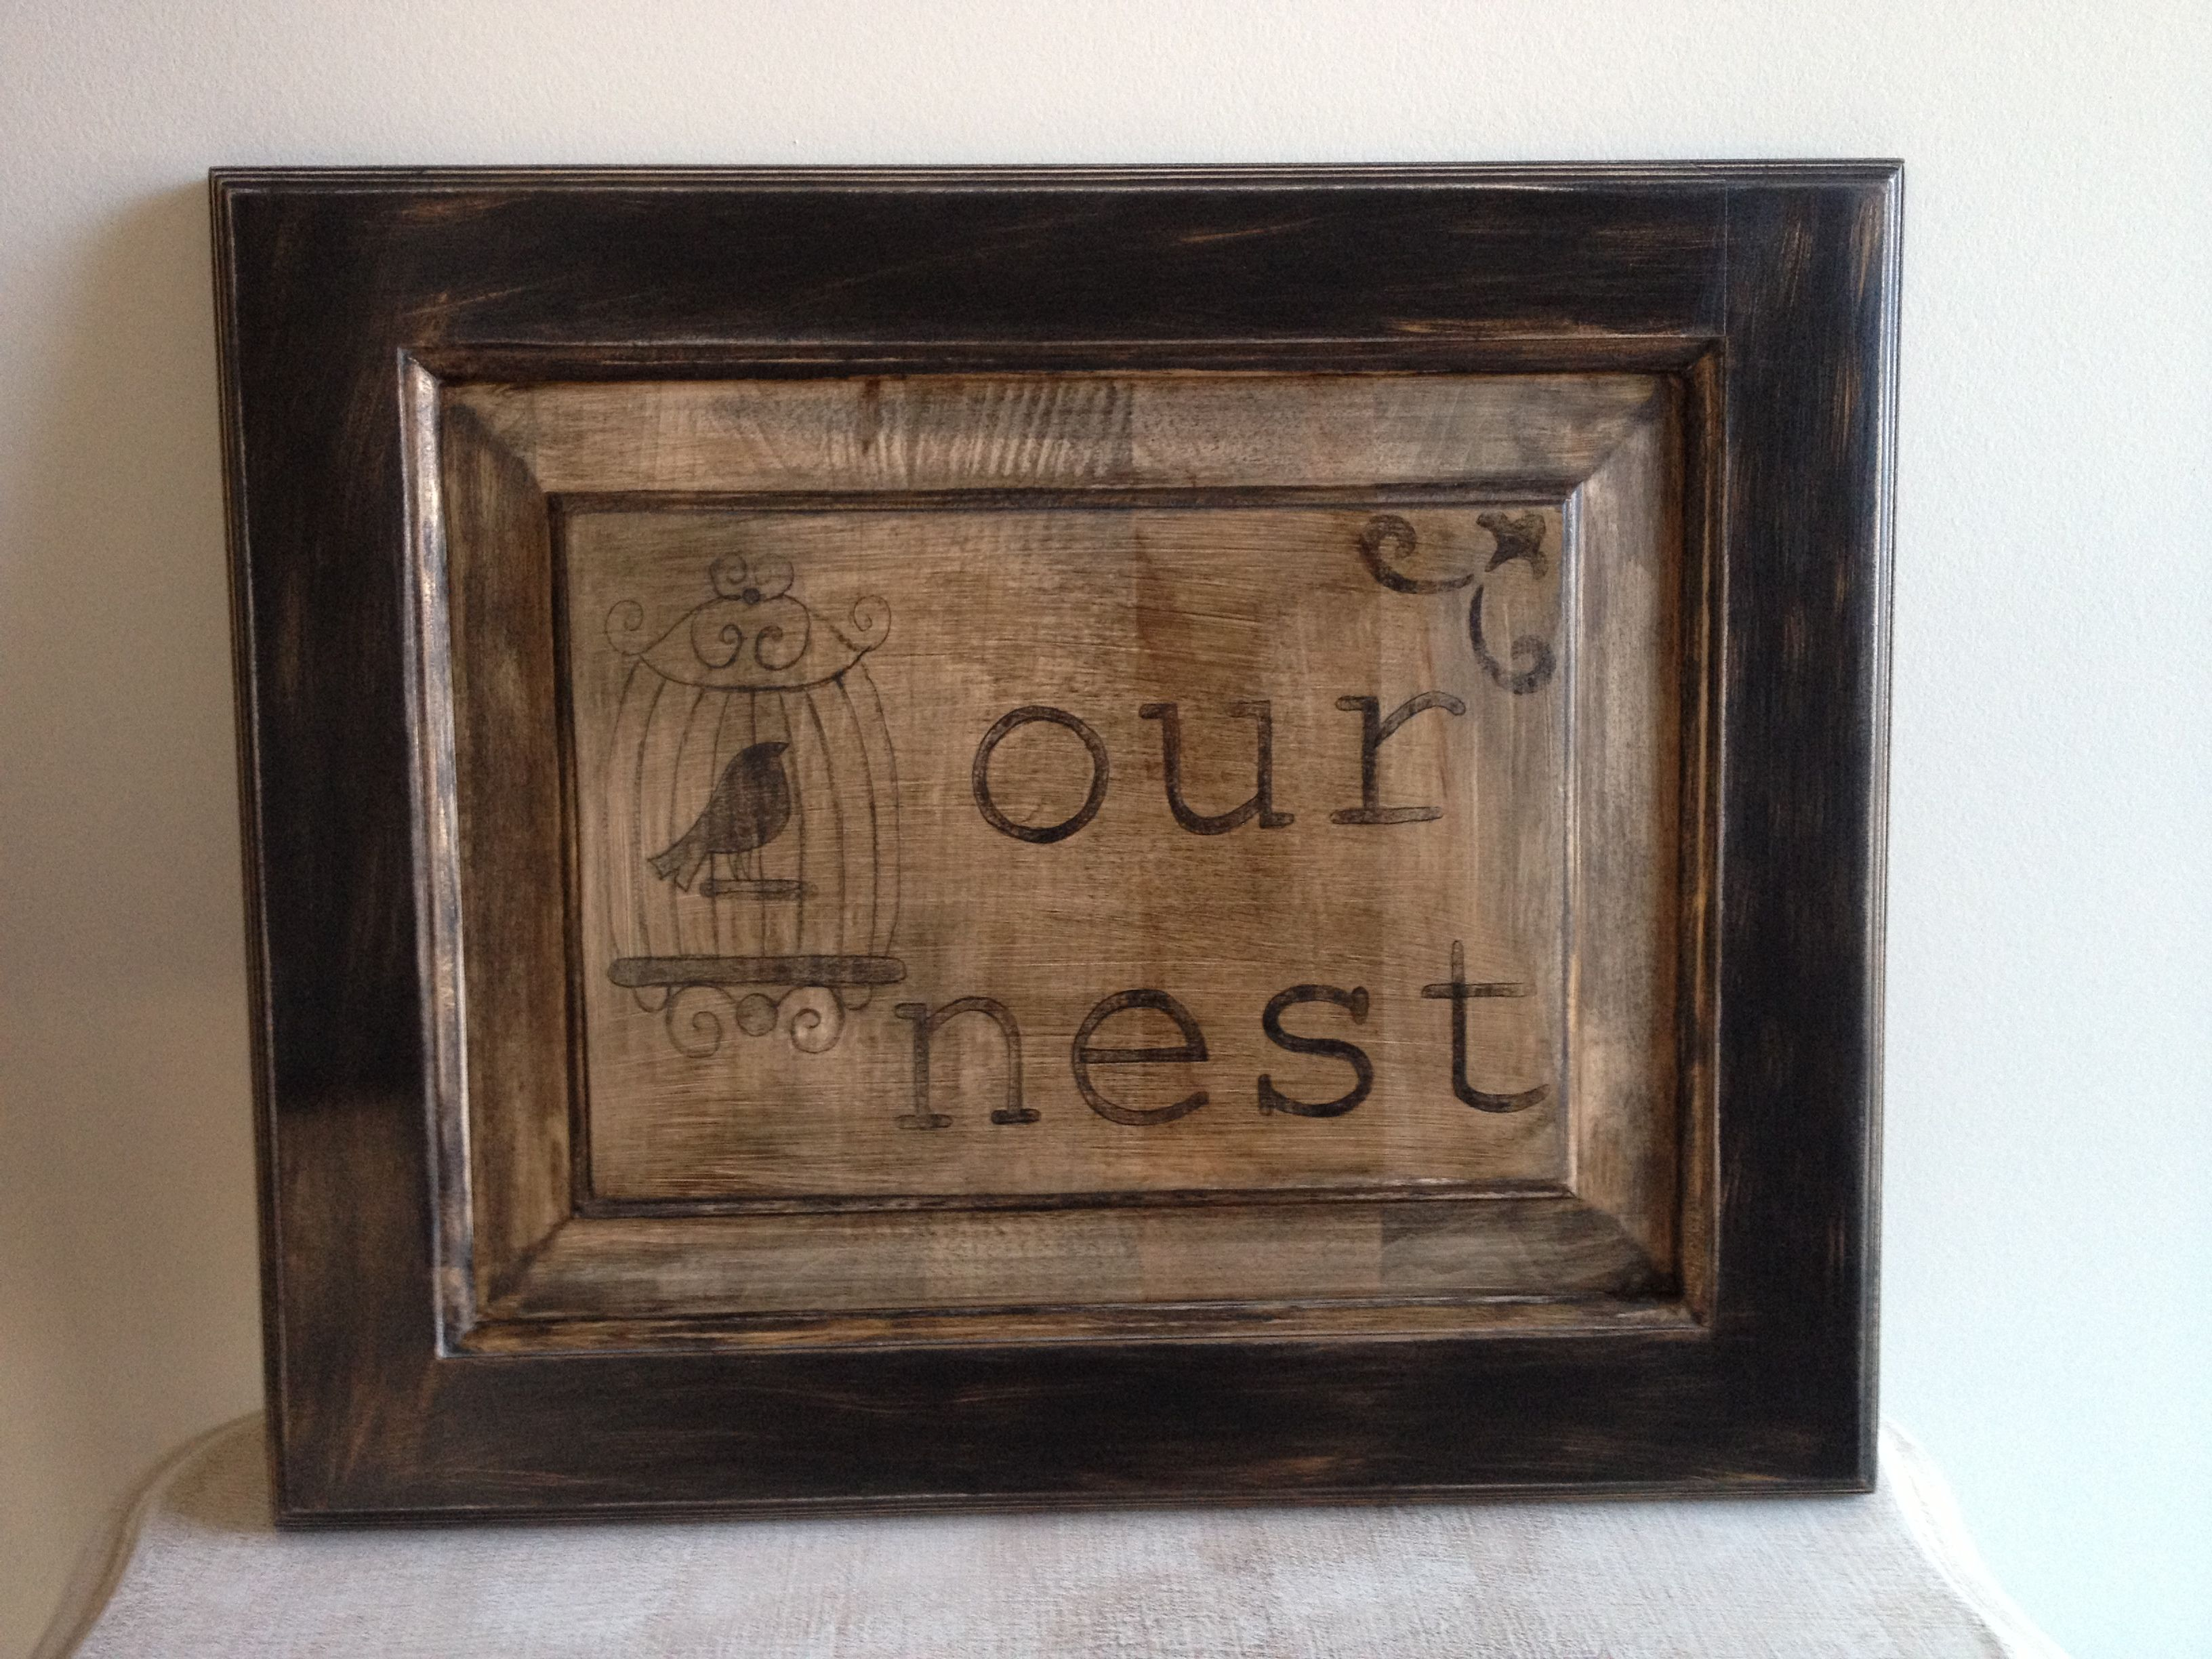 Our Nest On Upcycled Cabinet Door Upcycle Please Pinterest